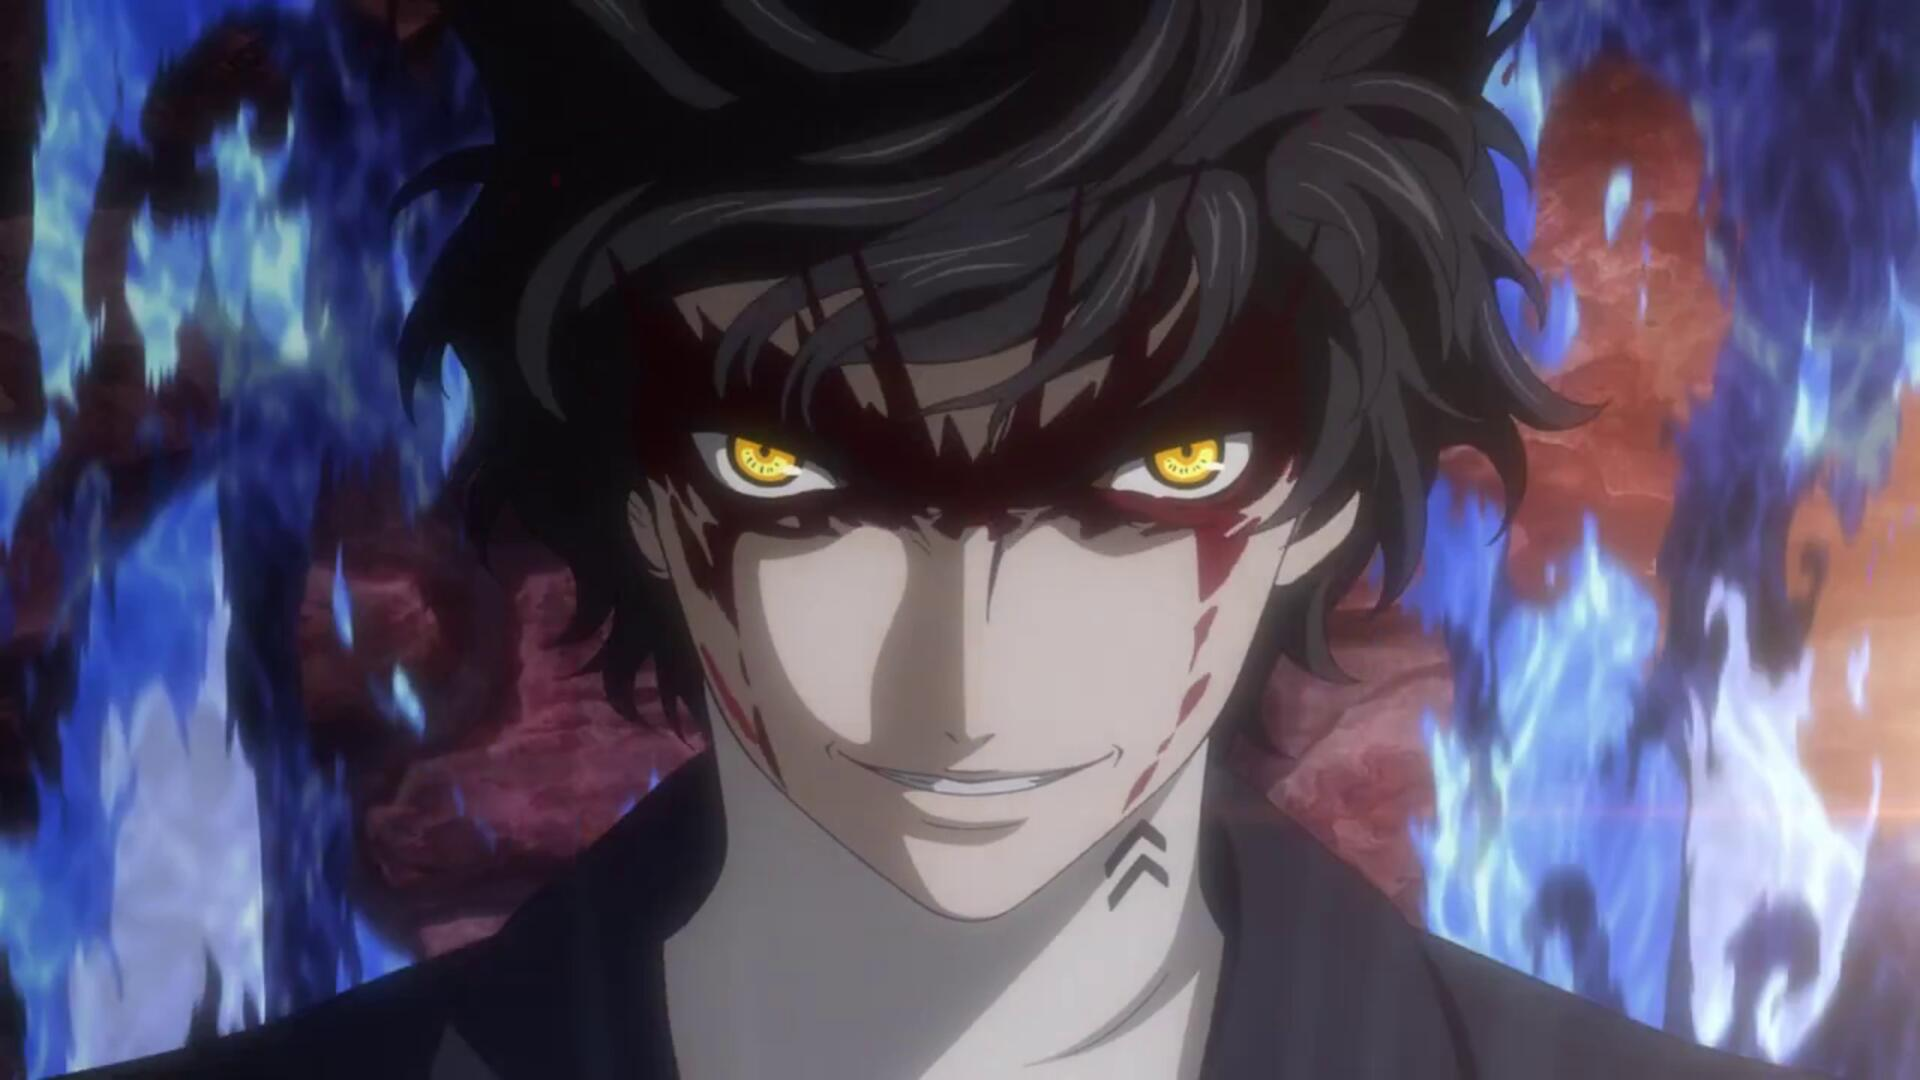 We Will Learn Much More About Persona 5 S and Persona 5: The Royal This Week